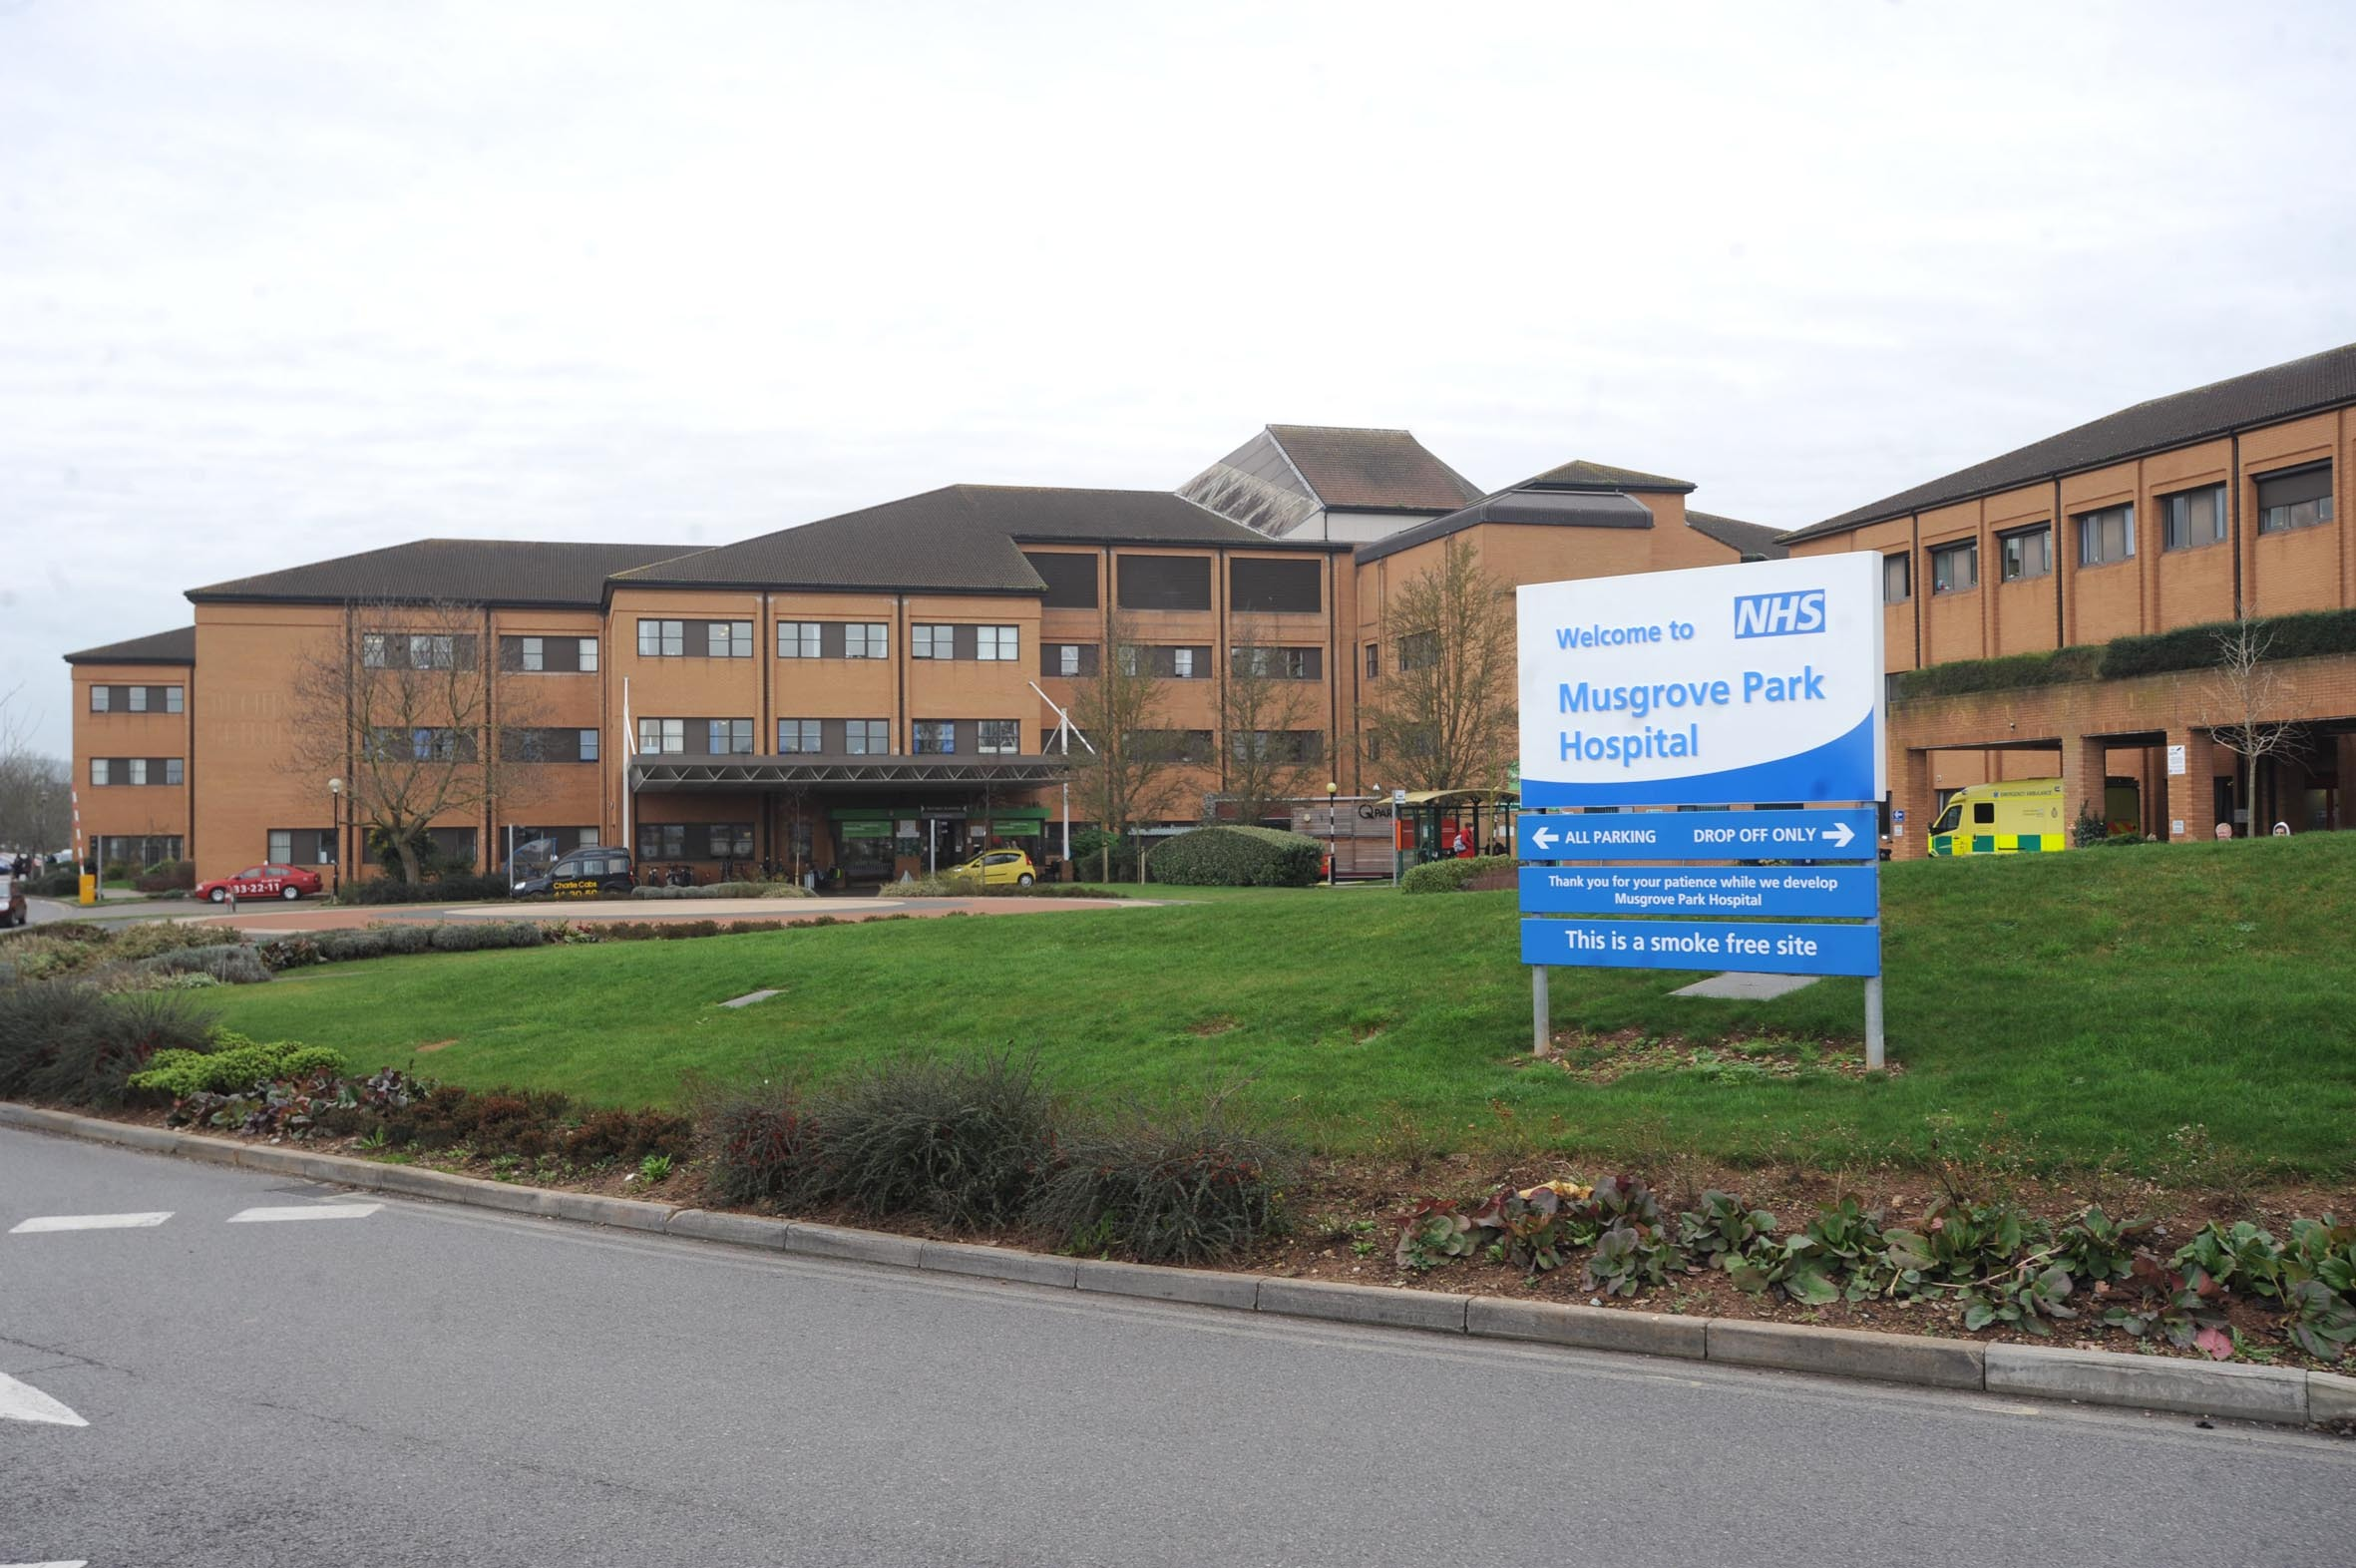 LETTER: Praise for A&E care at Musgrove